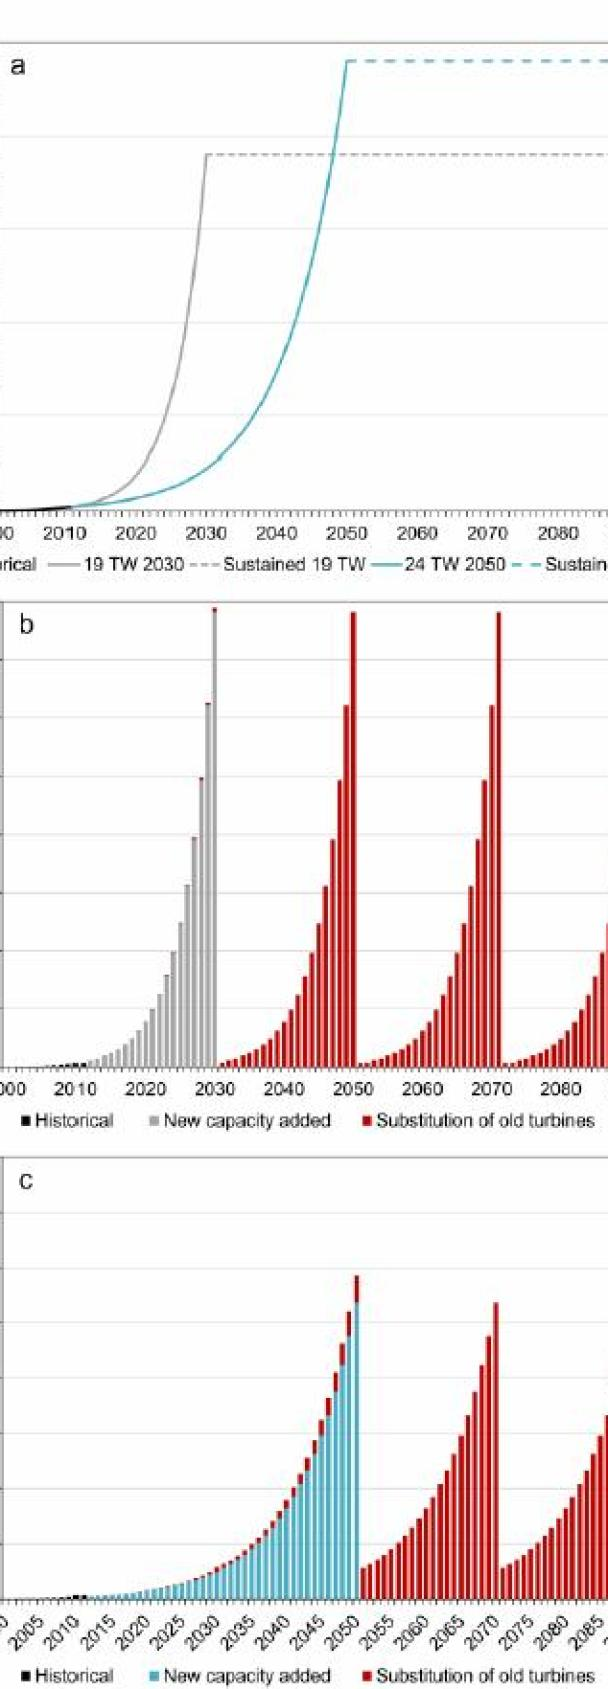 cumulative installed capacity of 24 TW by 2050